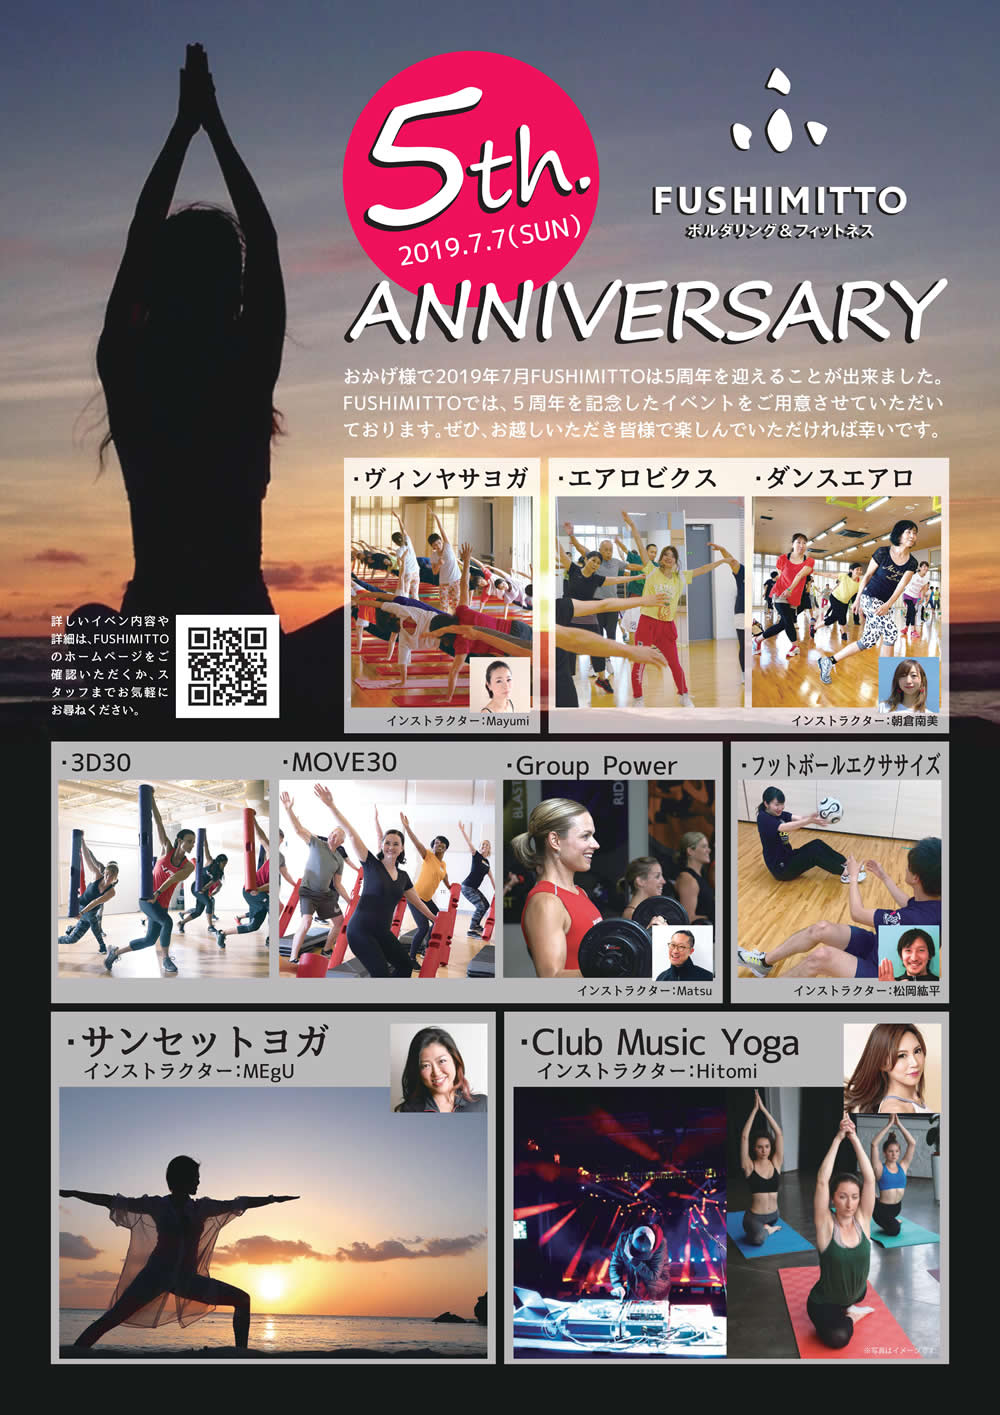 FUSHIMITTO 5th ANNIVERSARY EVENT